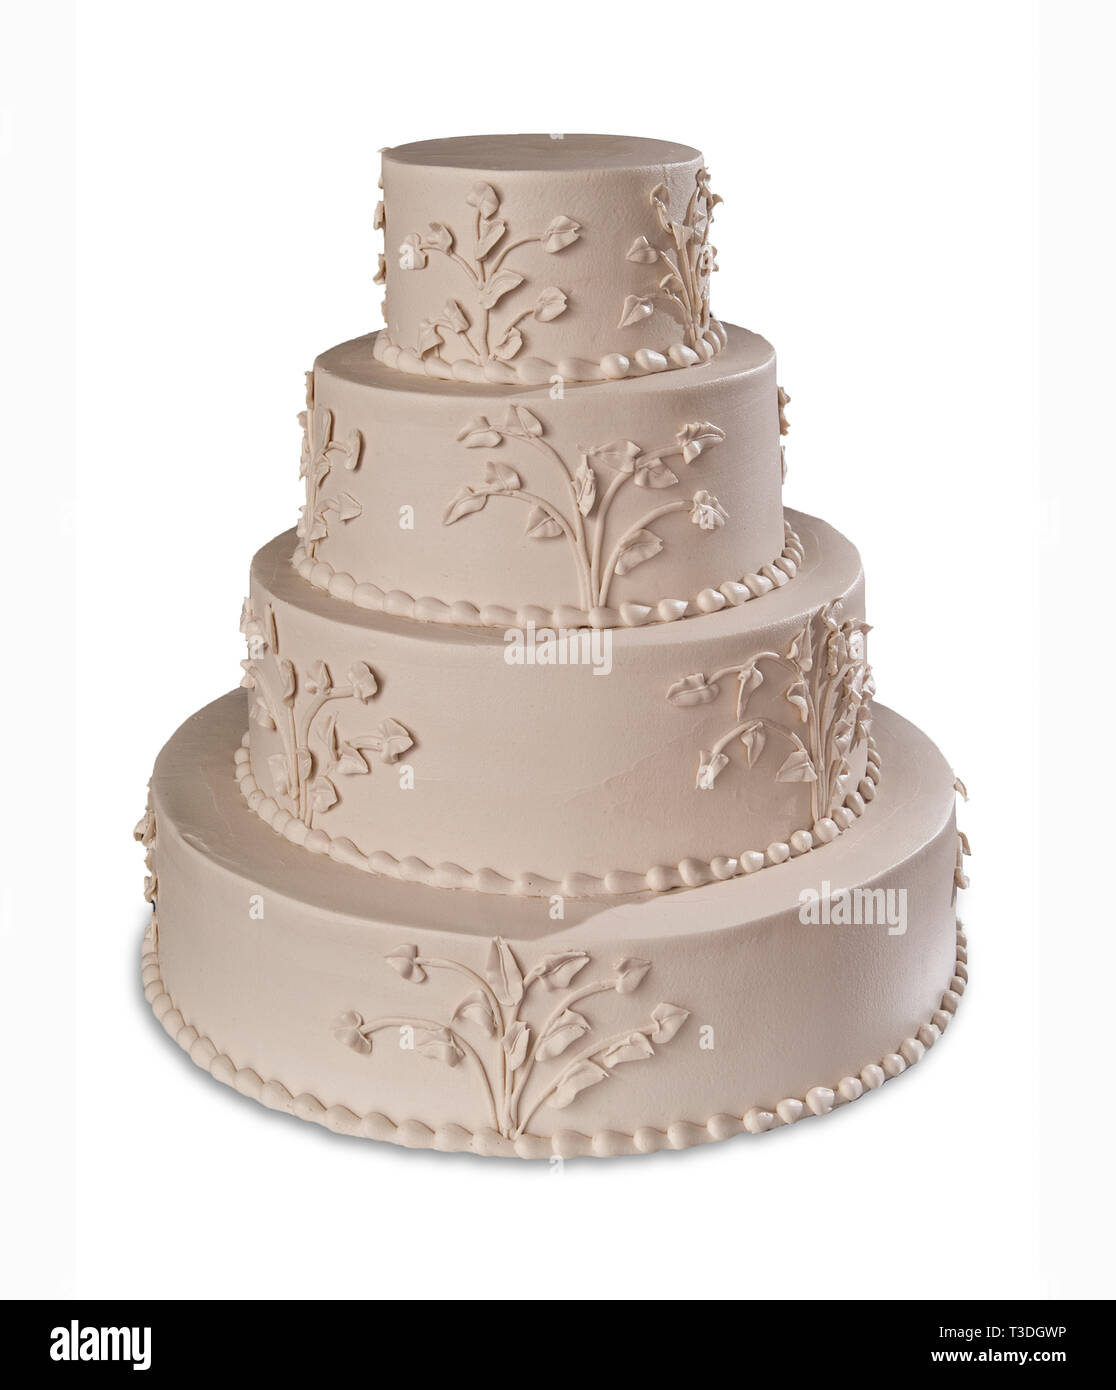 Ivory Tiered Wedding Cake - Stock Image